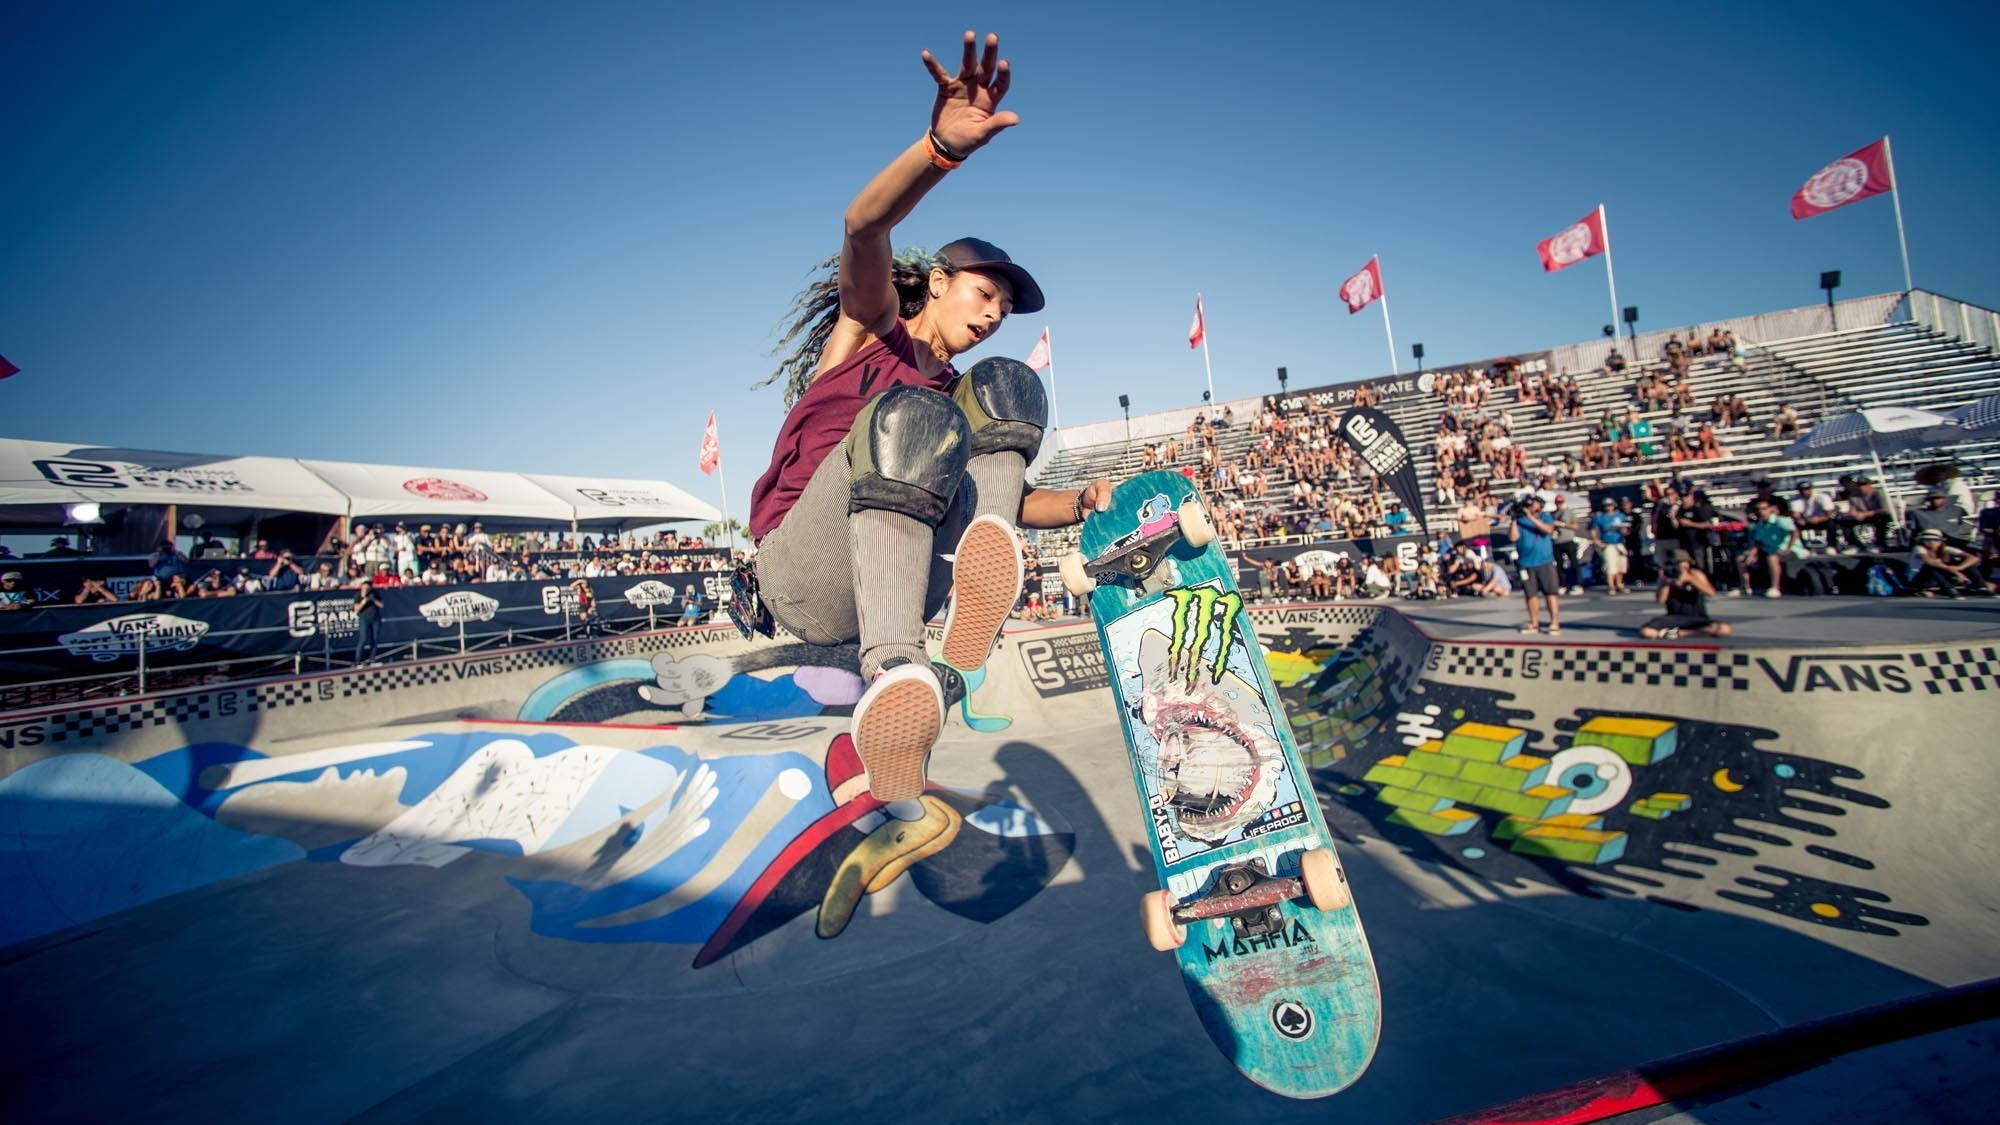 Female Skateboarders Still Striving For Even Footing With Male Peers